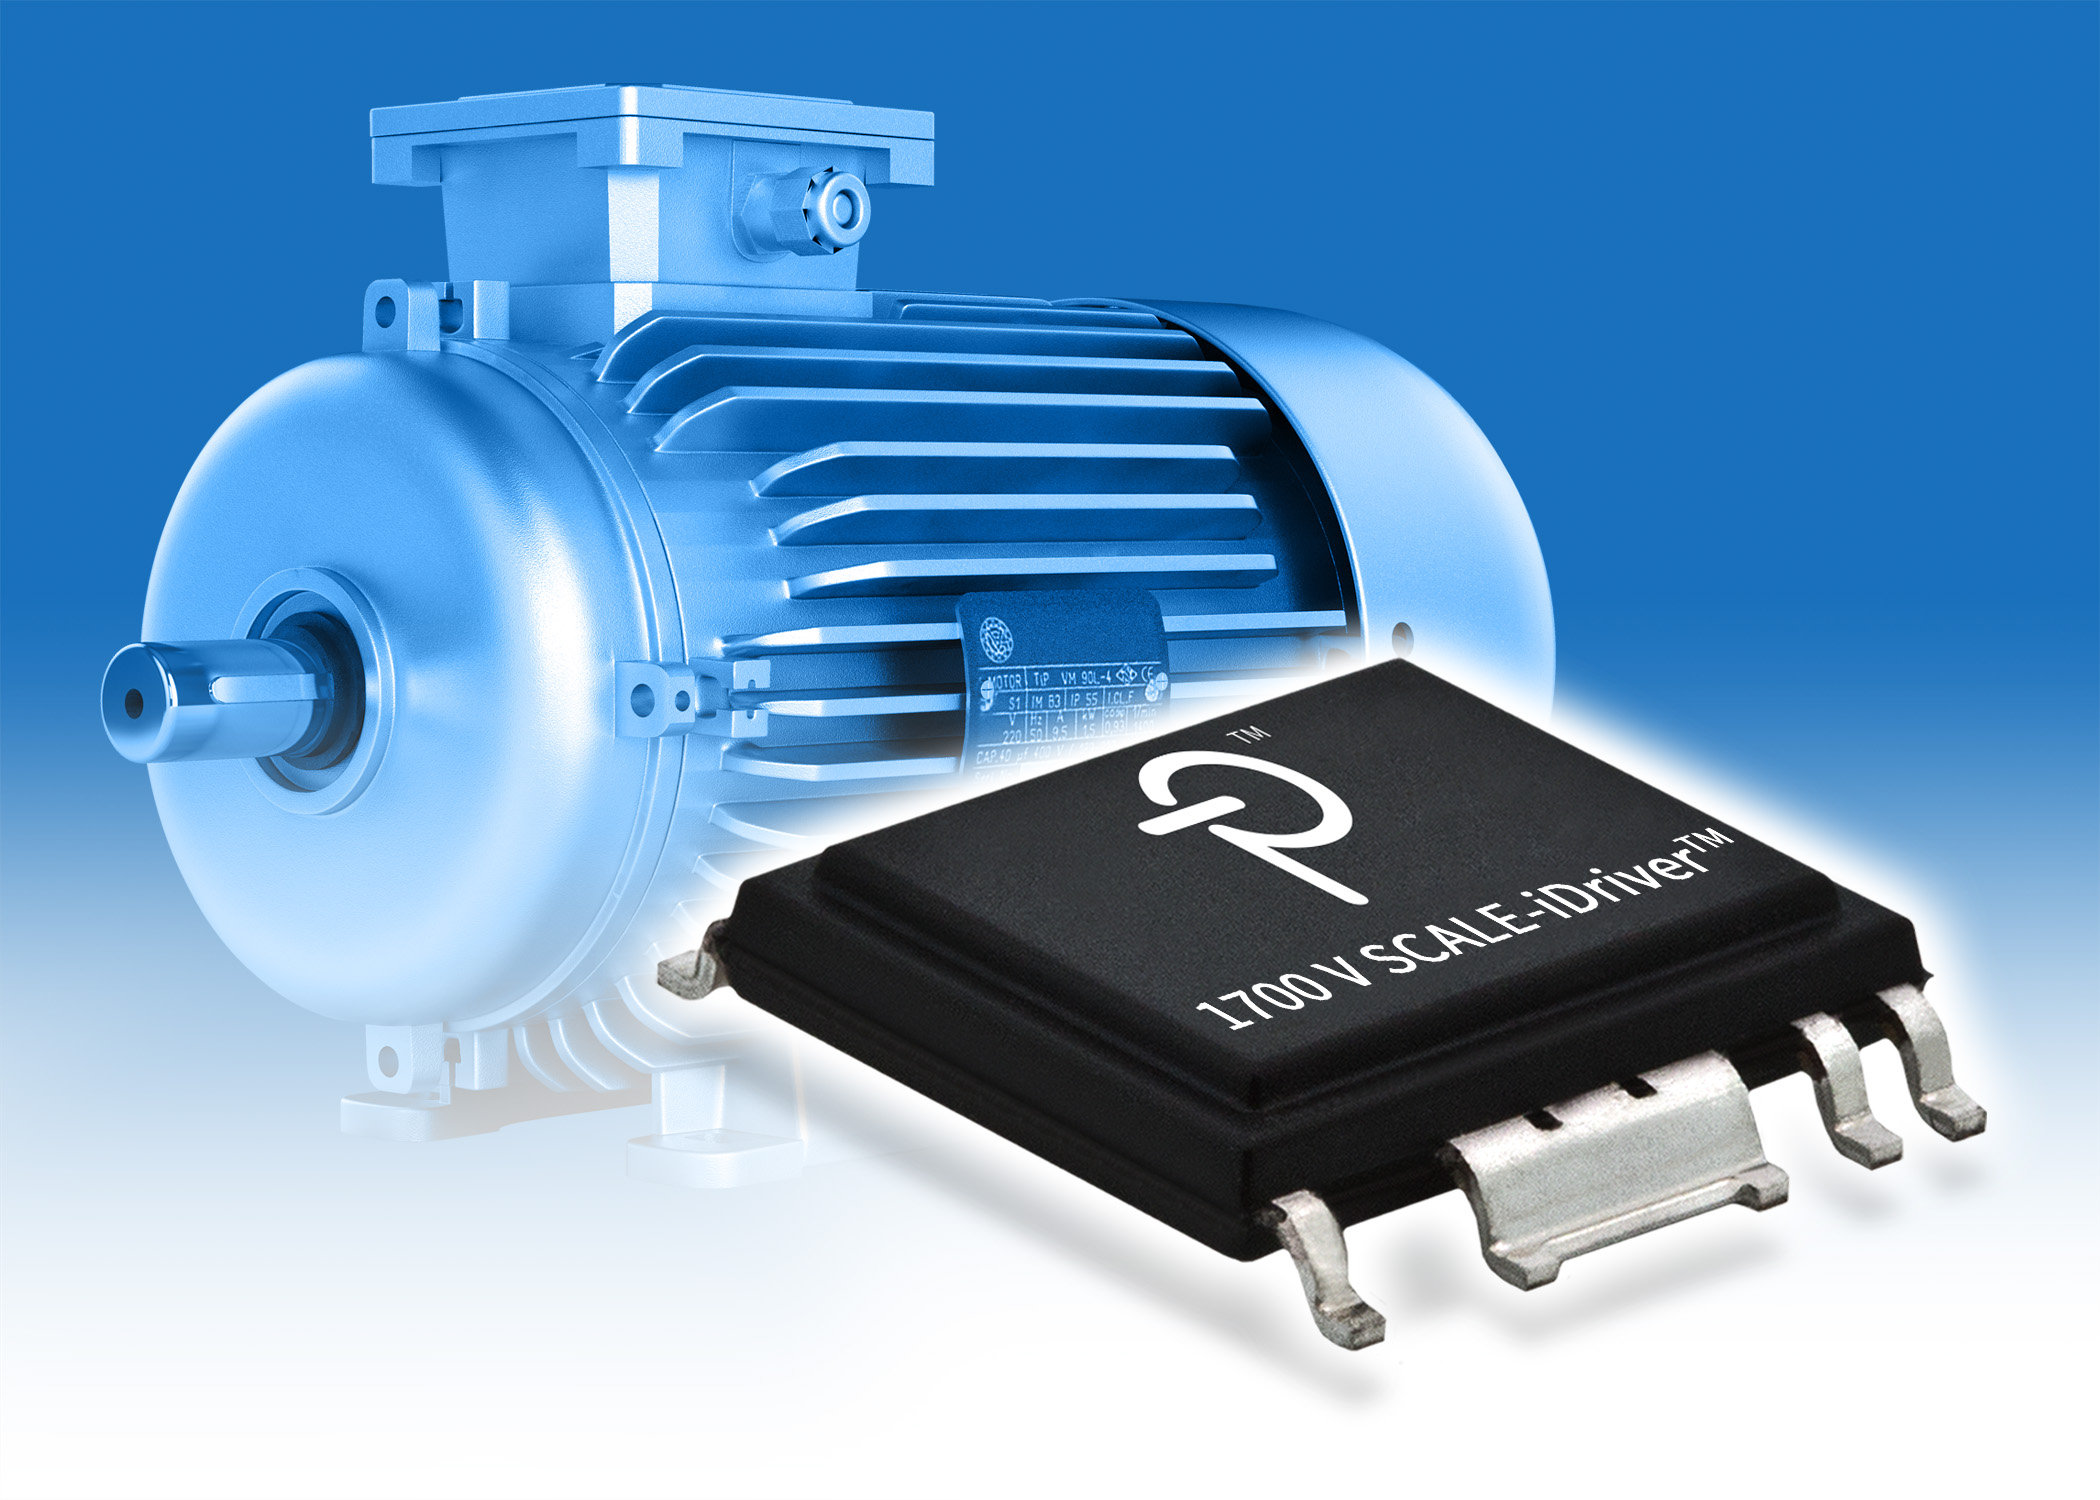 Automotive-qualified bare die IGBTs advance traction inverters